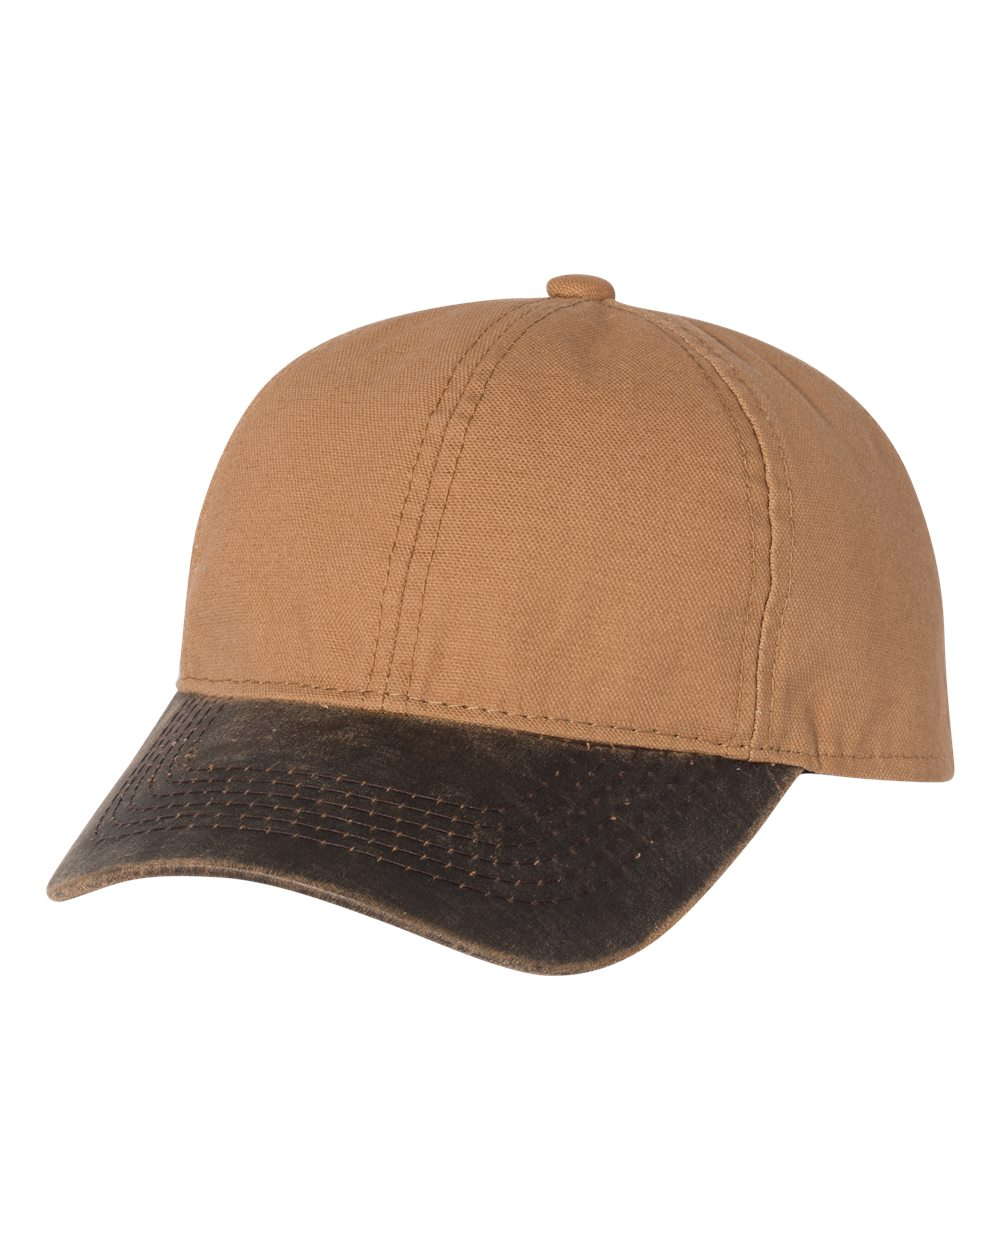 Outdoor Cap HPK100 - Canvas Cap with Weathered Cotton Visor